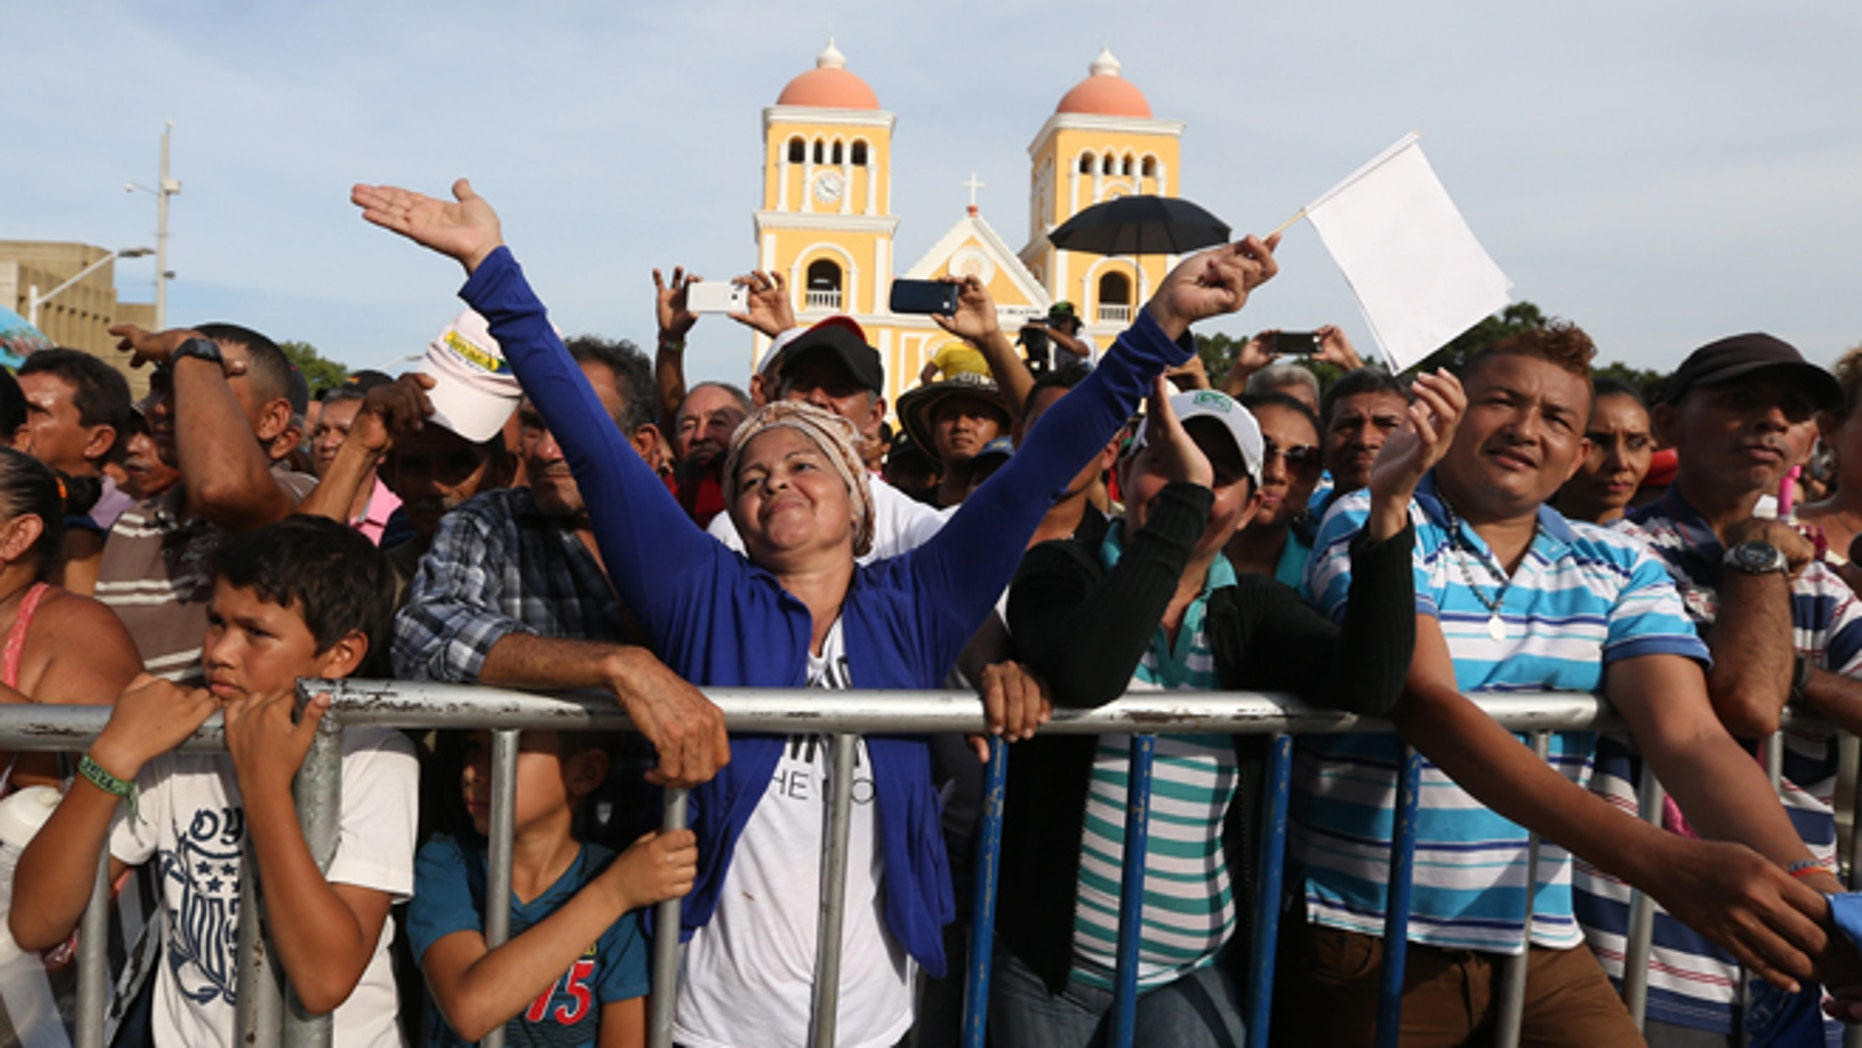 People enjoy a concert for peace in Carmen de Bolivar, Colombia, Sunday, Sept. 25, 2016. Colombia's government and the Revolutionary Armed Forces of Colombia, FARC, will sign a peace agreement to end over 50 years of conflict, in Cartagena, on Monday. (AP Photo/Fernando Vergara)